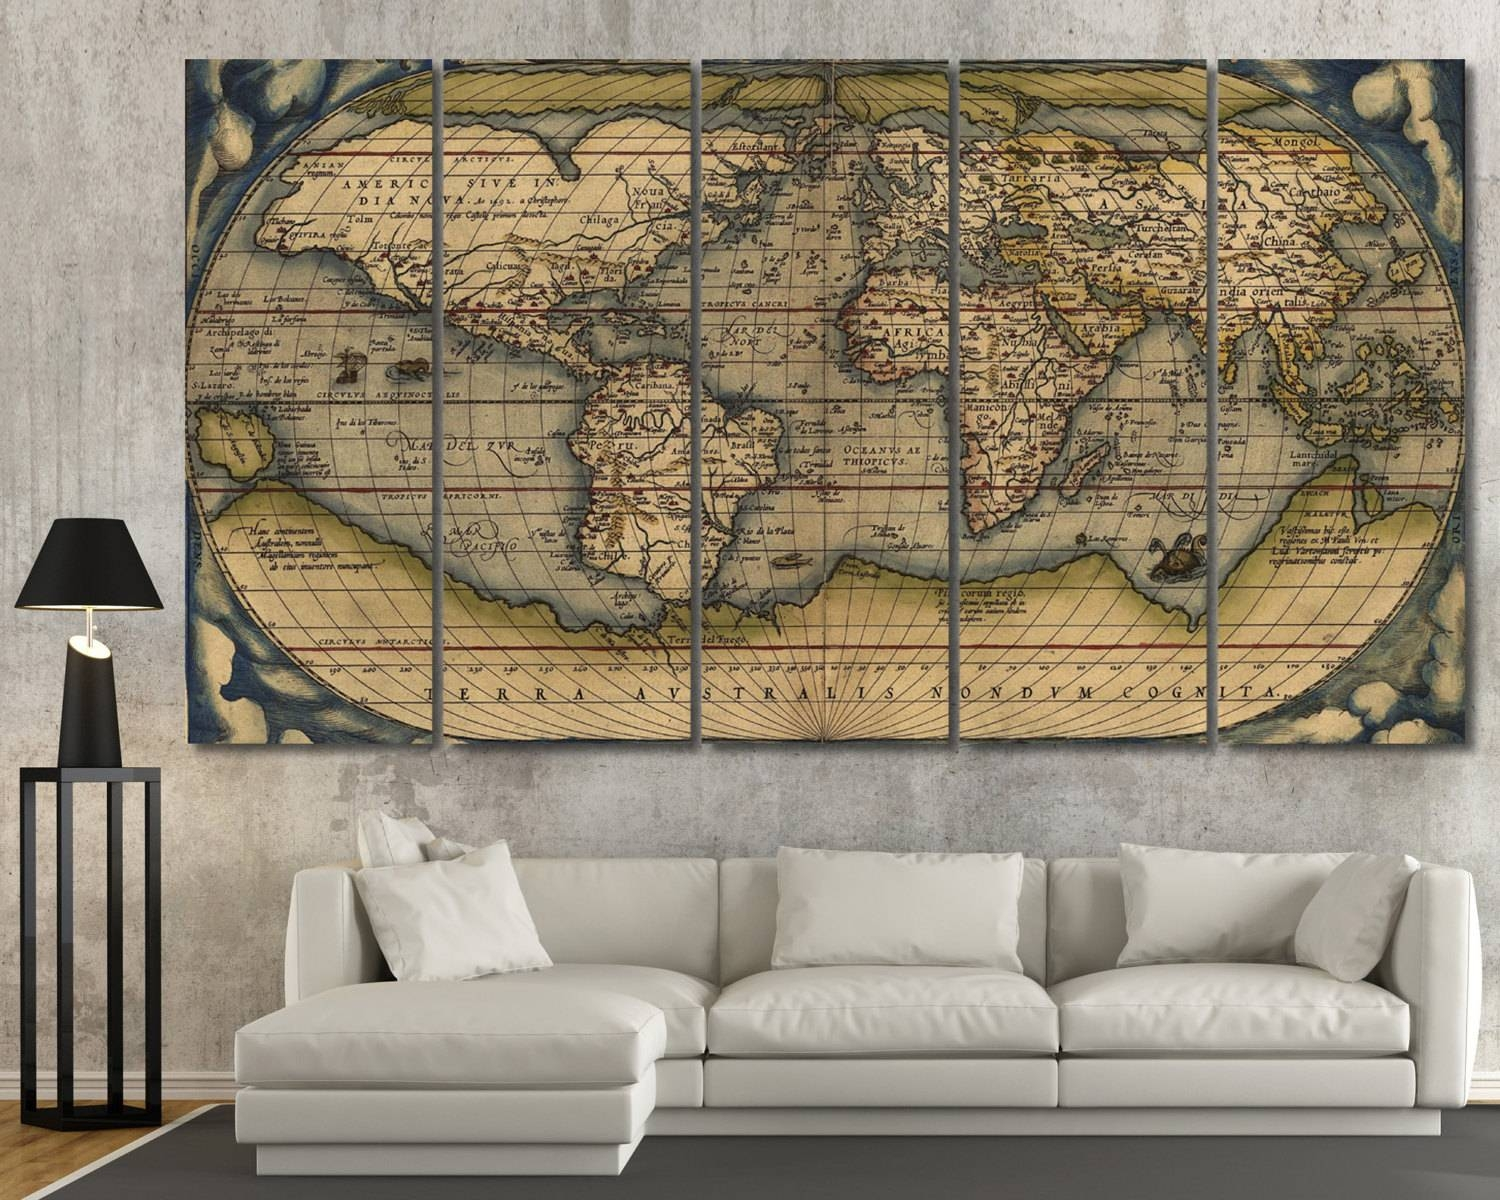 Large Vintage Wall Art Old World Map Antique World Map Canvas Regarding Most Recently Released Large Retro Wall Art (View 13 of 25)